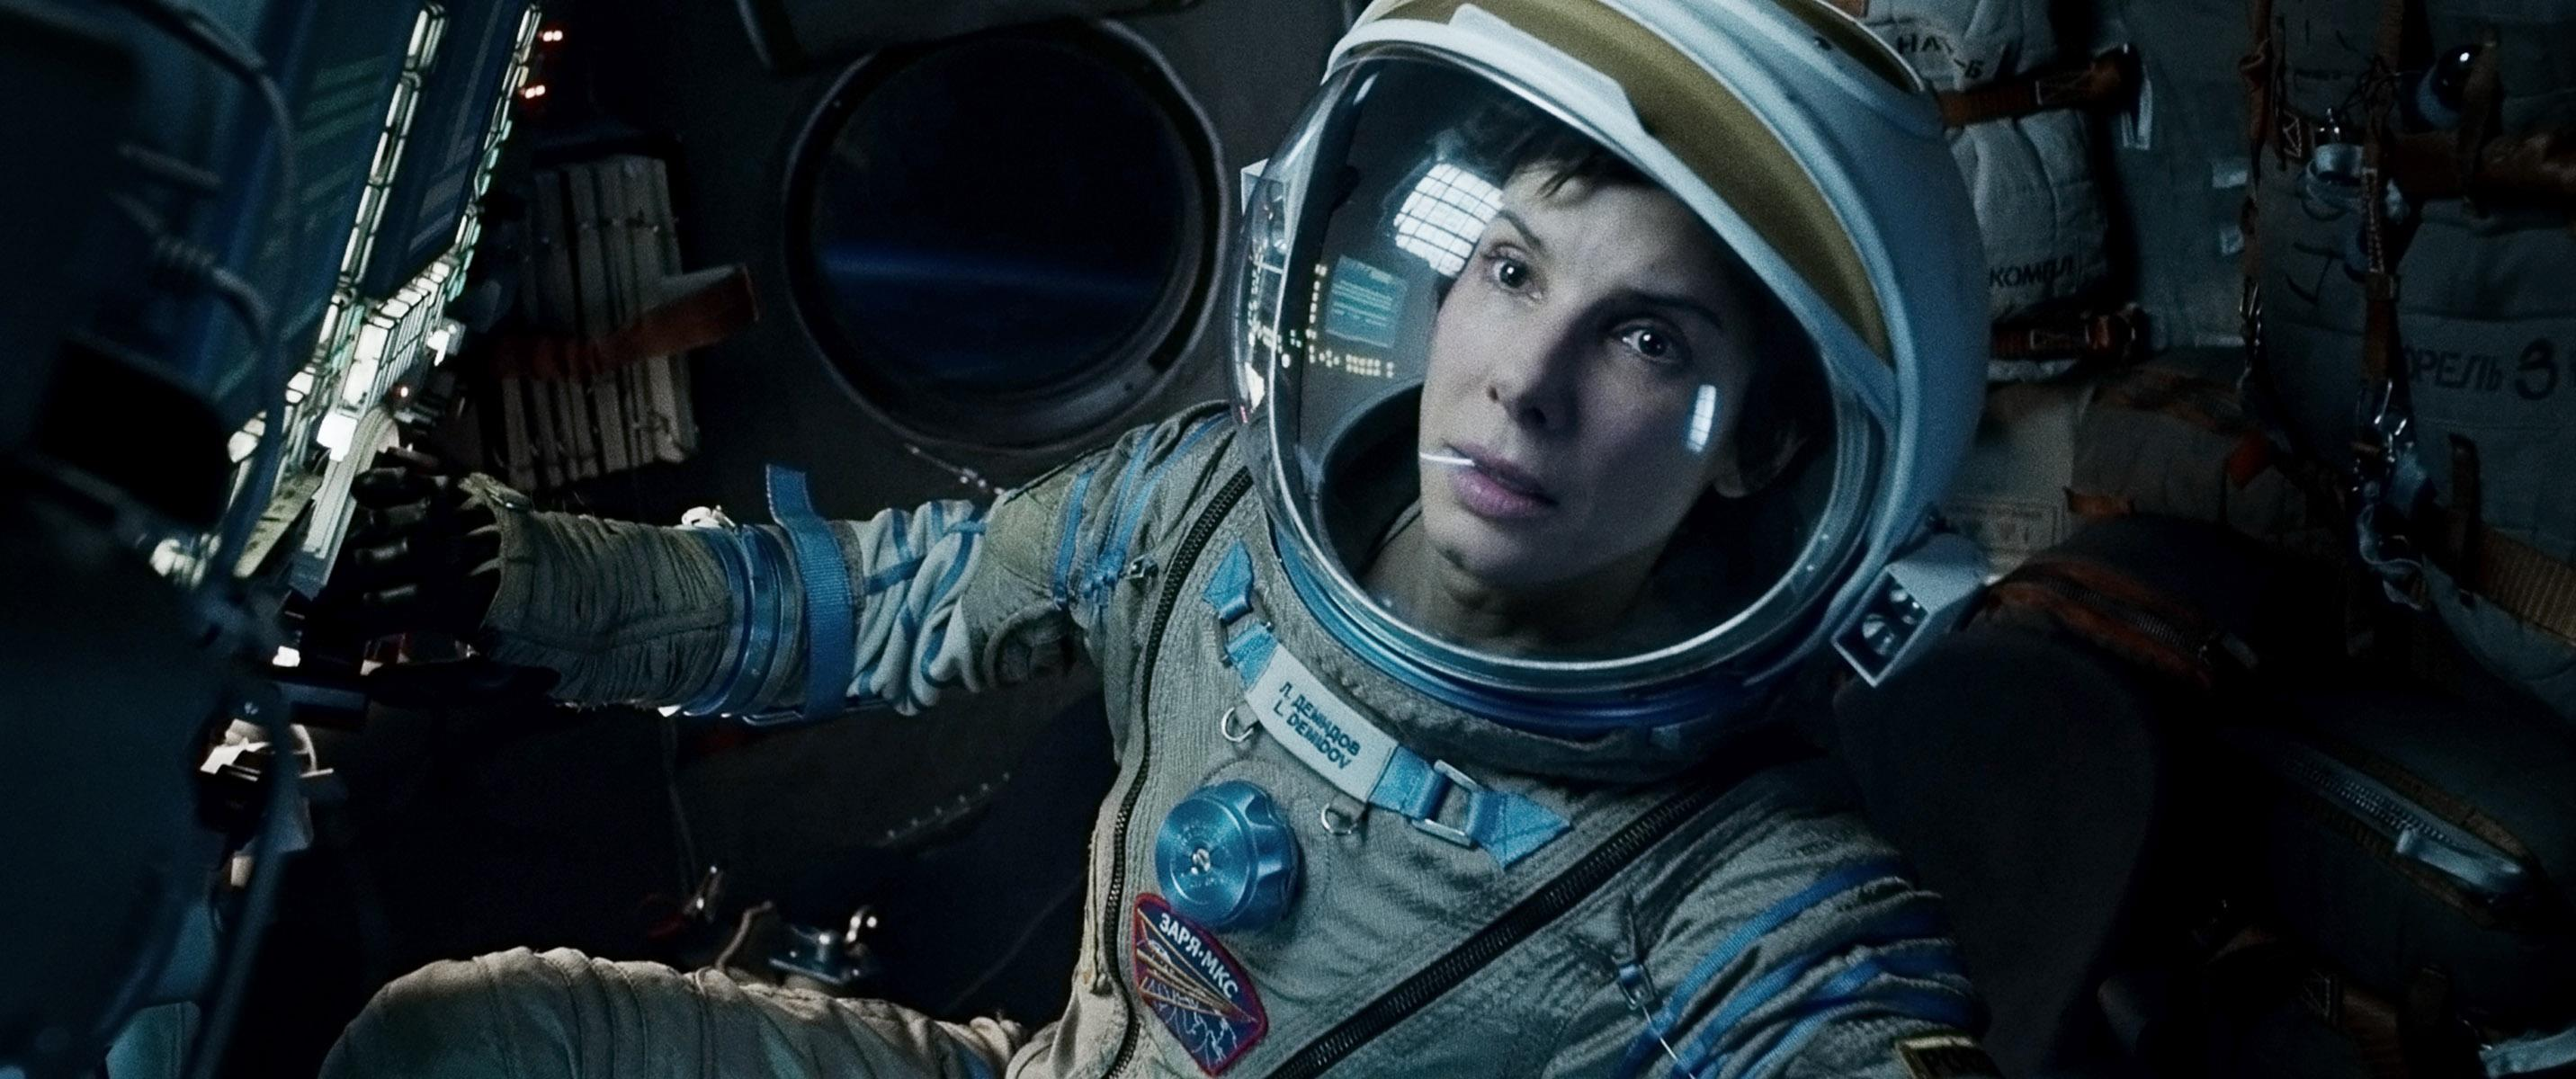 "This film image released by Warner Bros. Pictures shows Sandra Bullock in a scene from ""Gravity."" This year's best picture race at the 86th Academy Awards on Sunday, March 2, 2014, has shaped up to be one of the most unpredictable in years. The favorites are ""12 Years a Slave,"" ""Gravity"" and ""American Hustle."" (AP Photo/Warner Bros. Pictures, File)"